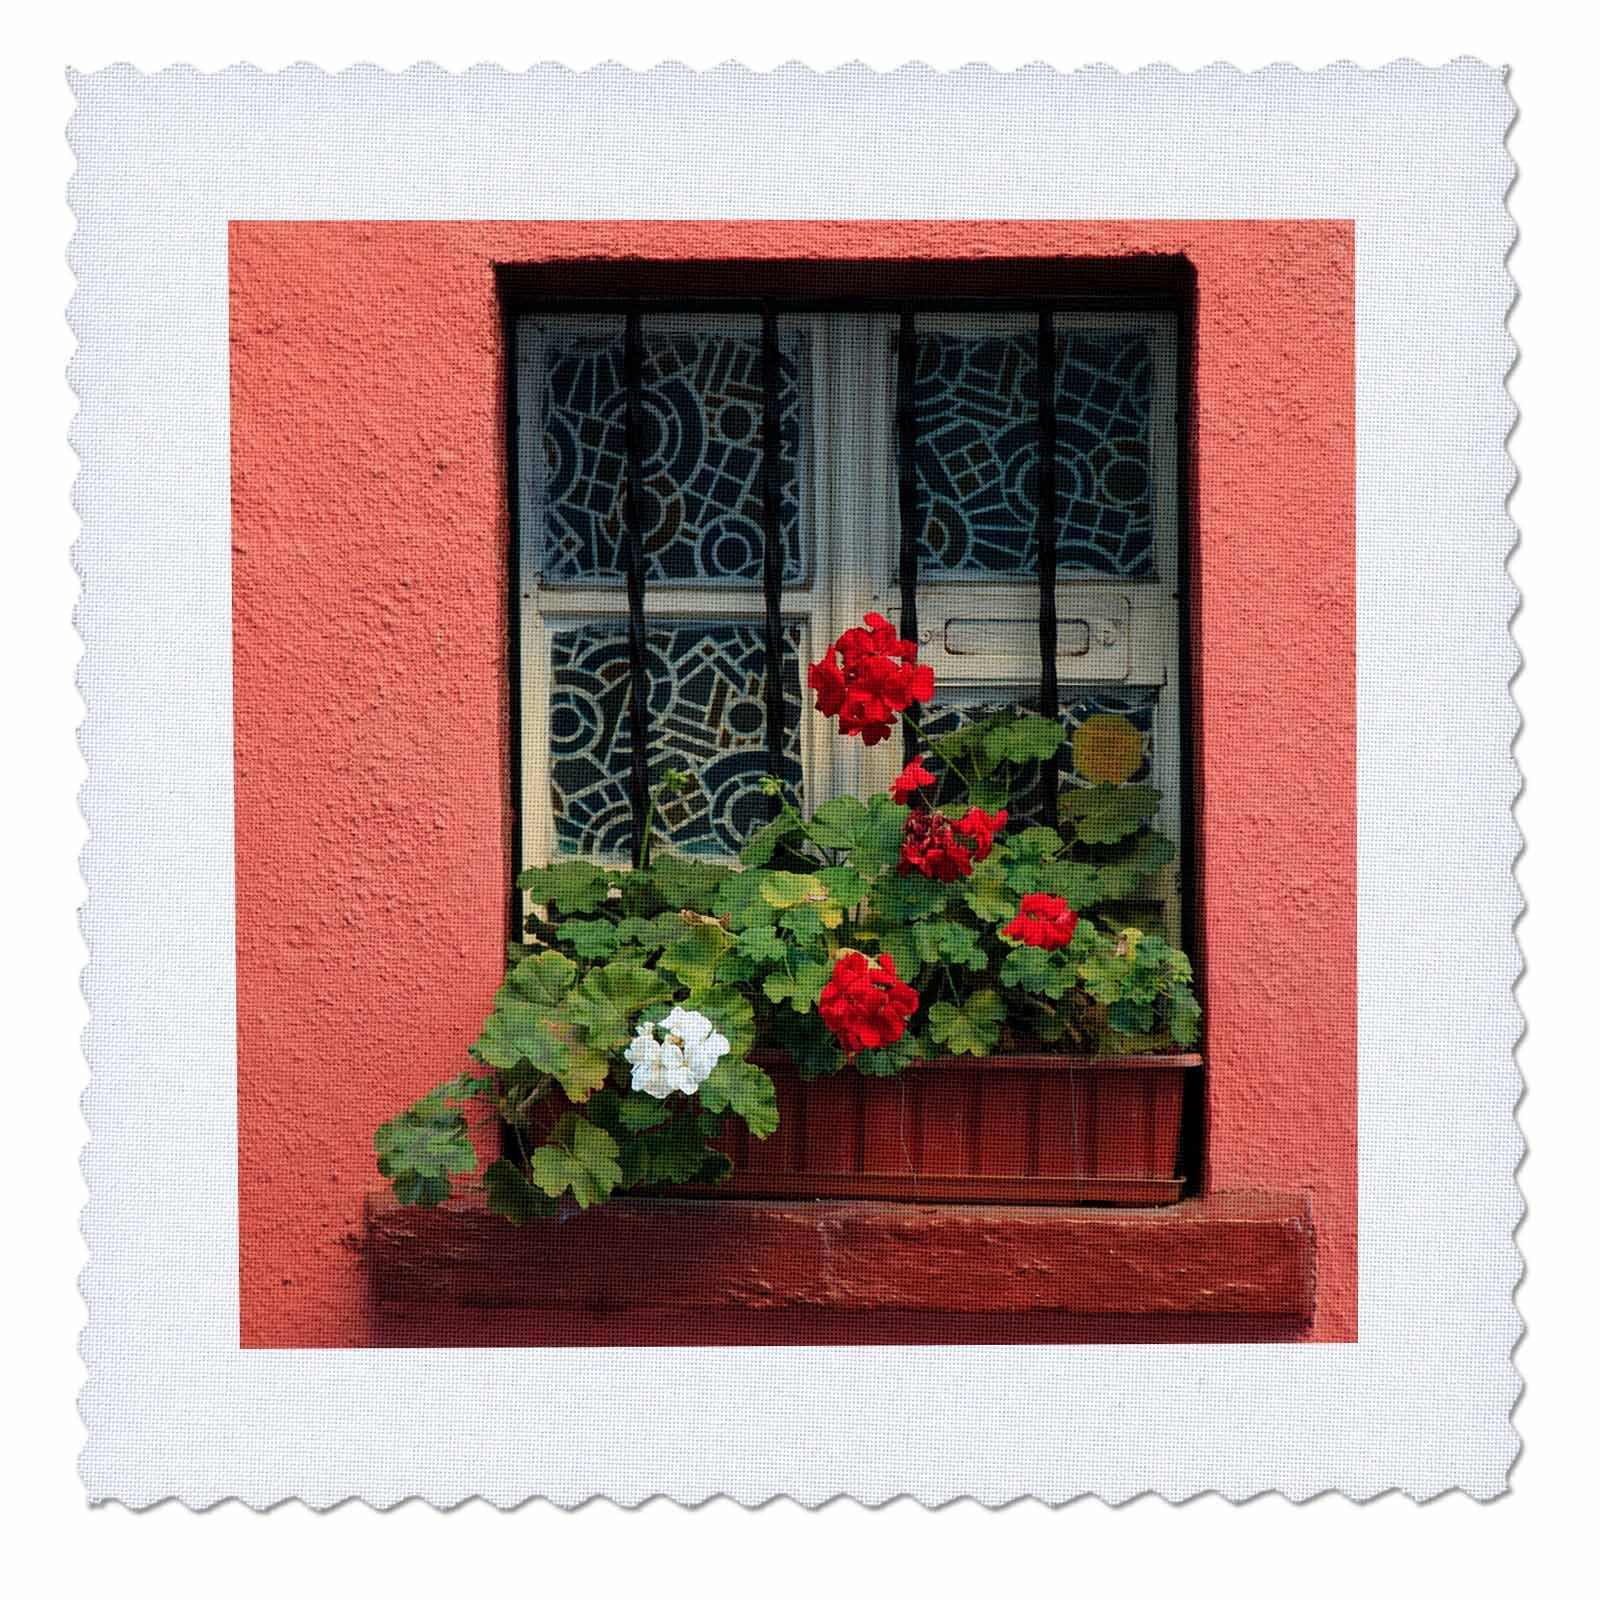 3dRose Danita Delimont - Flowers - Romania, Sighisoara, residential window in old town. Flowers in window - 20x20 inch quilt square (qs_277872_8)